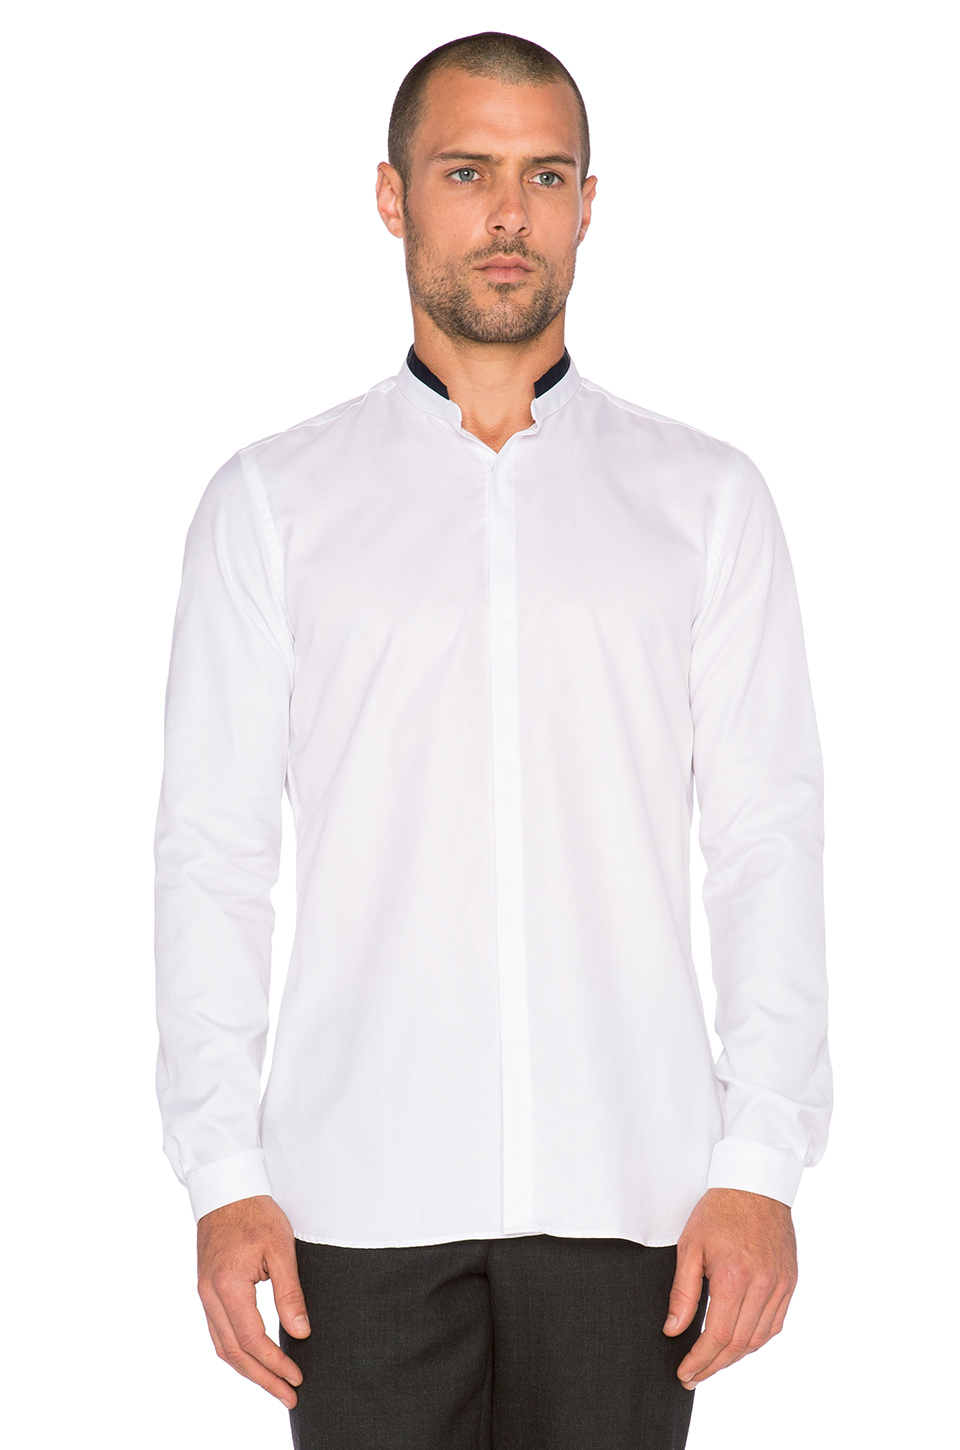 If you want to buy cheap men stand collar shirt, choose men stand collar shirt from coolmfilb6.gq It endeavors to provide the products that you want, offering the best bang for your buck. Whatever men stand collar shirt styles you want, can be easily bought here.